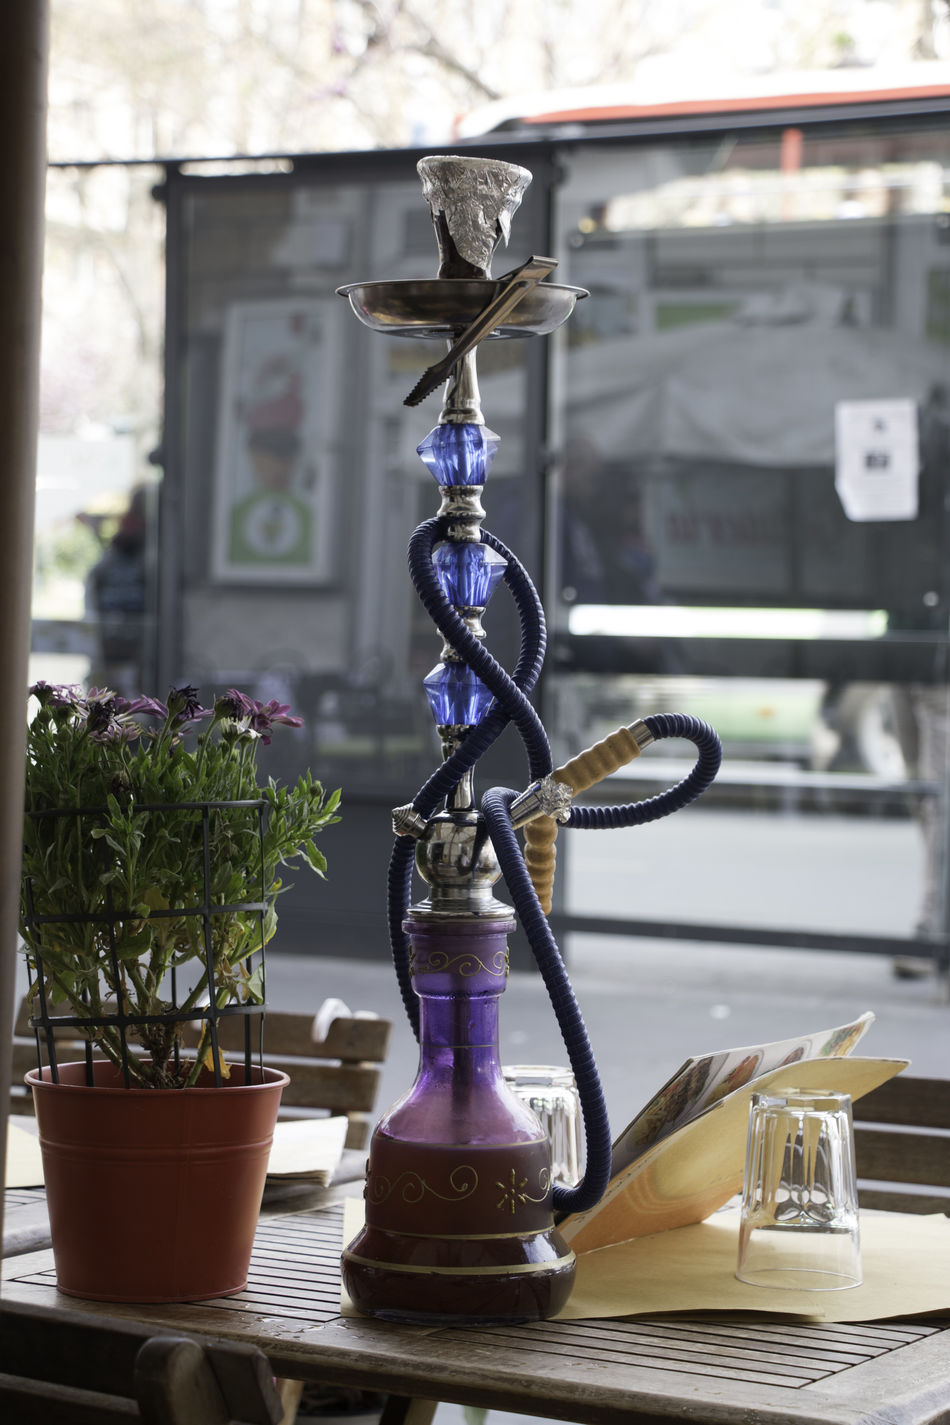 Cafe Hookah Cafe City Focus On Foreground Hookah Pipe Street View Tourinsm Travel